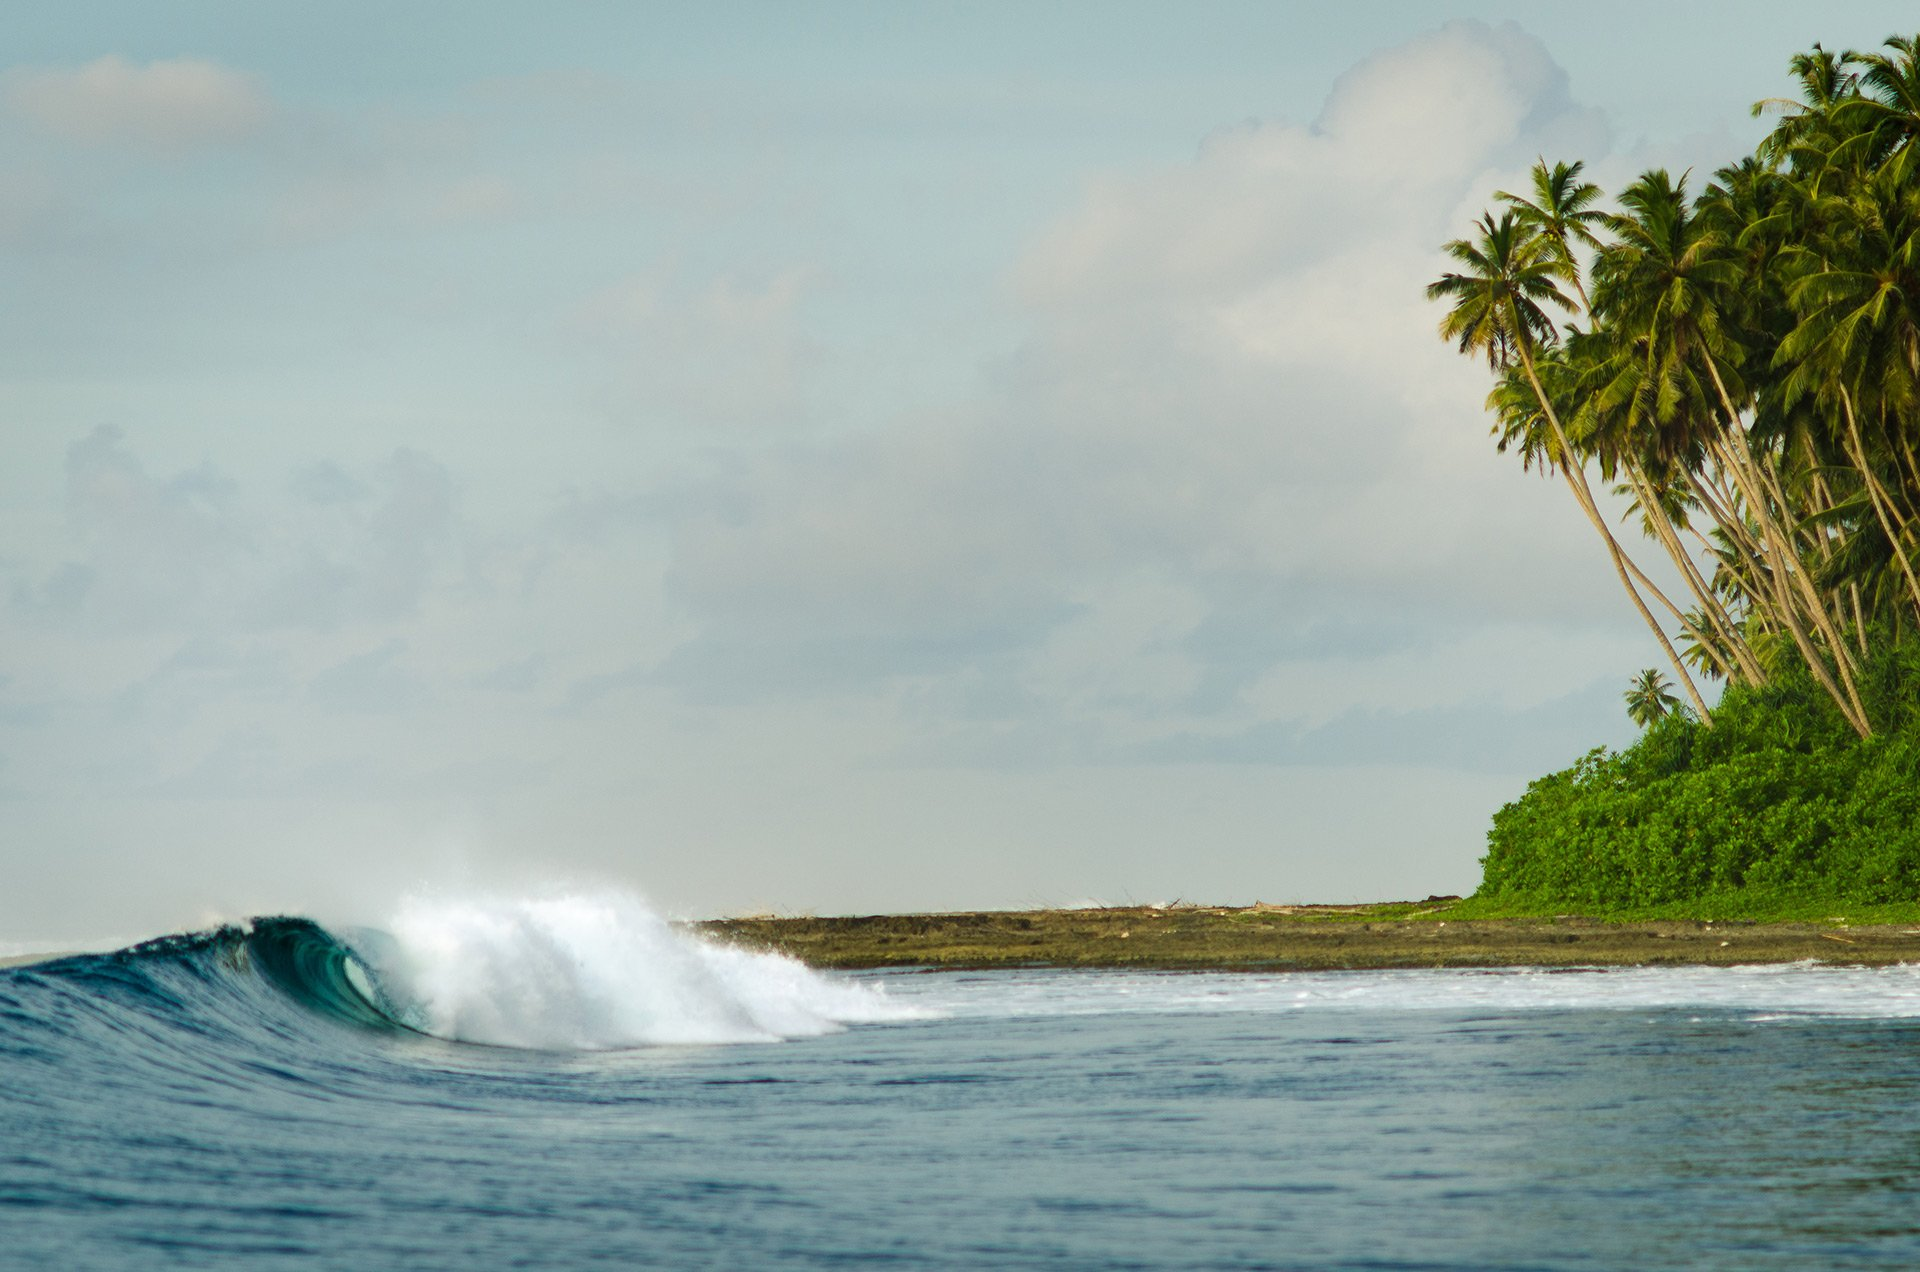 Surfing Simeulue surfspots: Tea-Bags